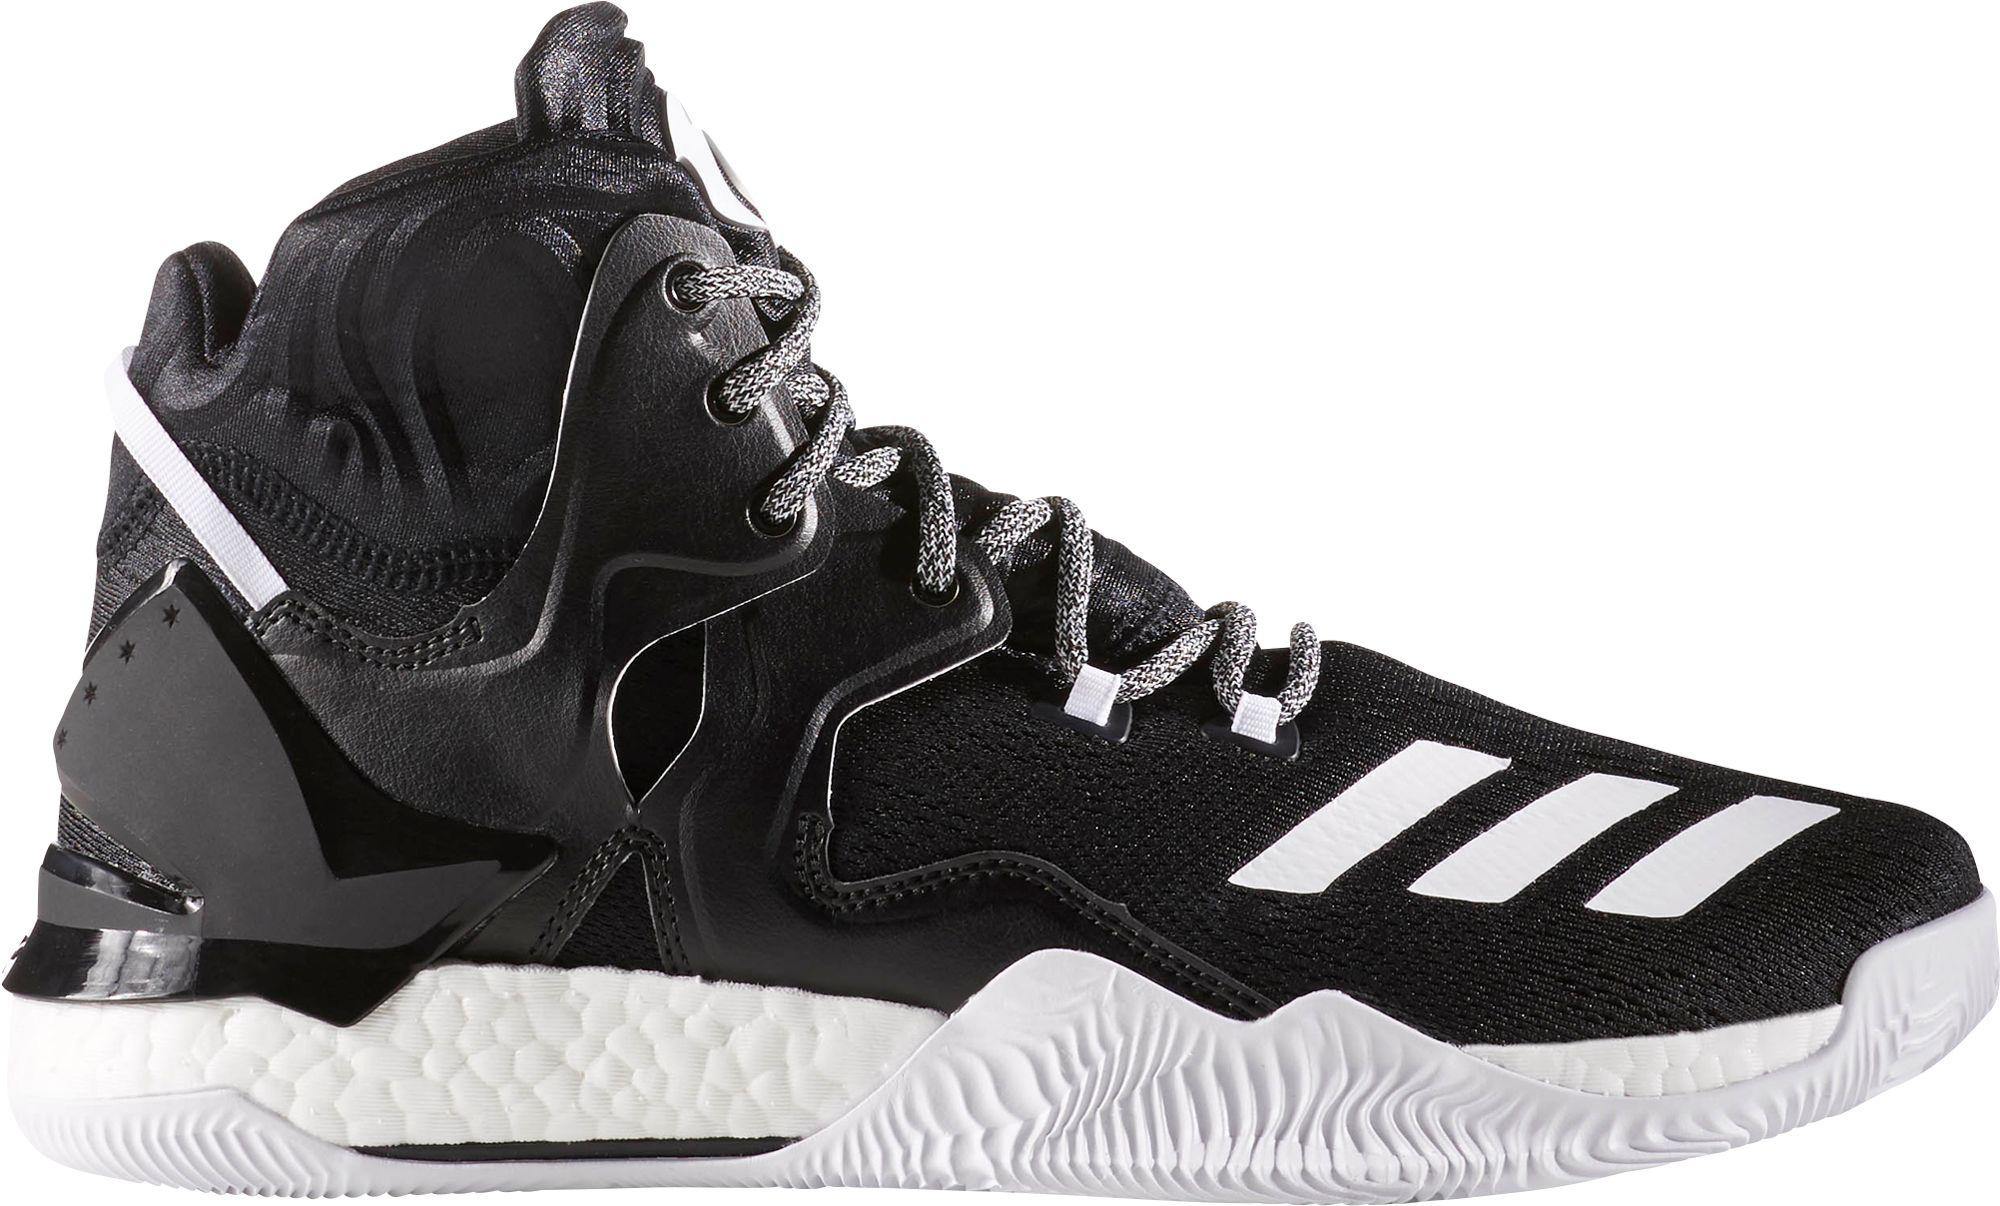 04cc091b6195a Lyst - adidas Originals D Rose 7 Boost Basketball Shoes in Black for Men